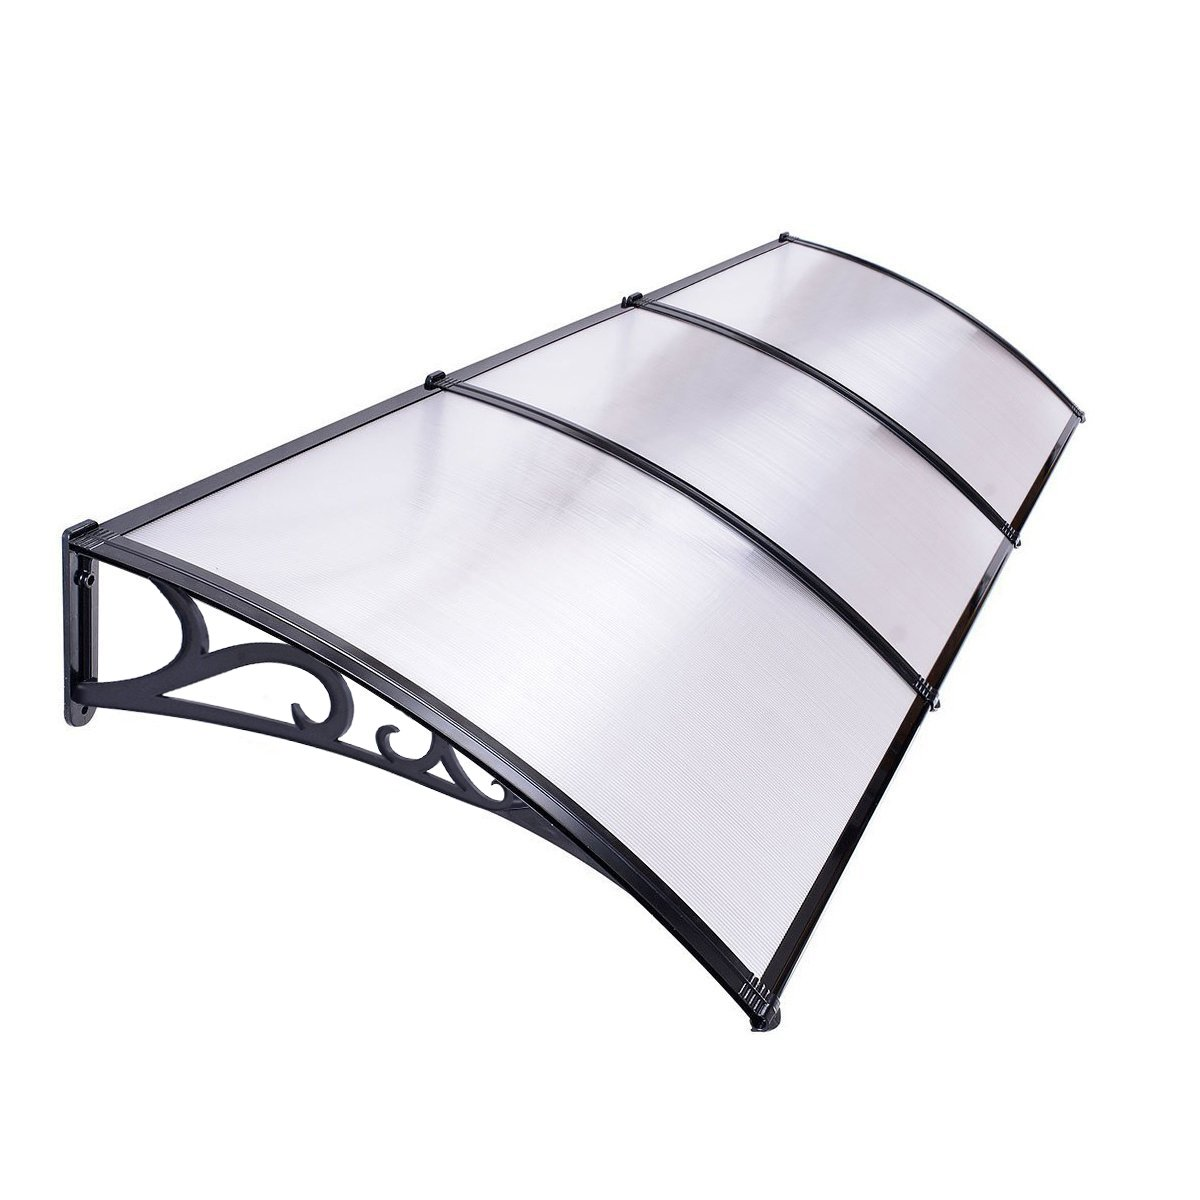 BLACK//WHITE DOOR CANOPY OPAQUE CORRUGATED AWNING SHELTER ROOF FRONT BACK OUTDOOR